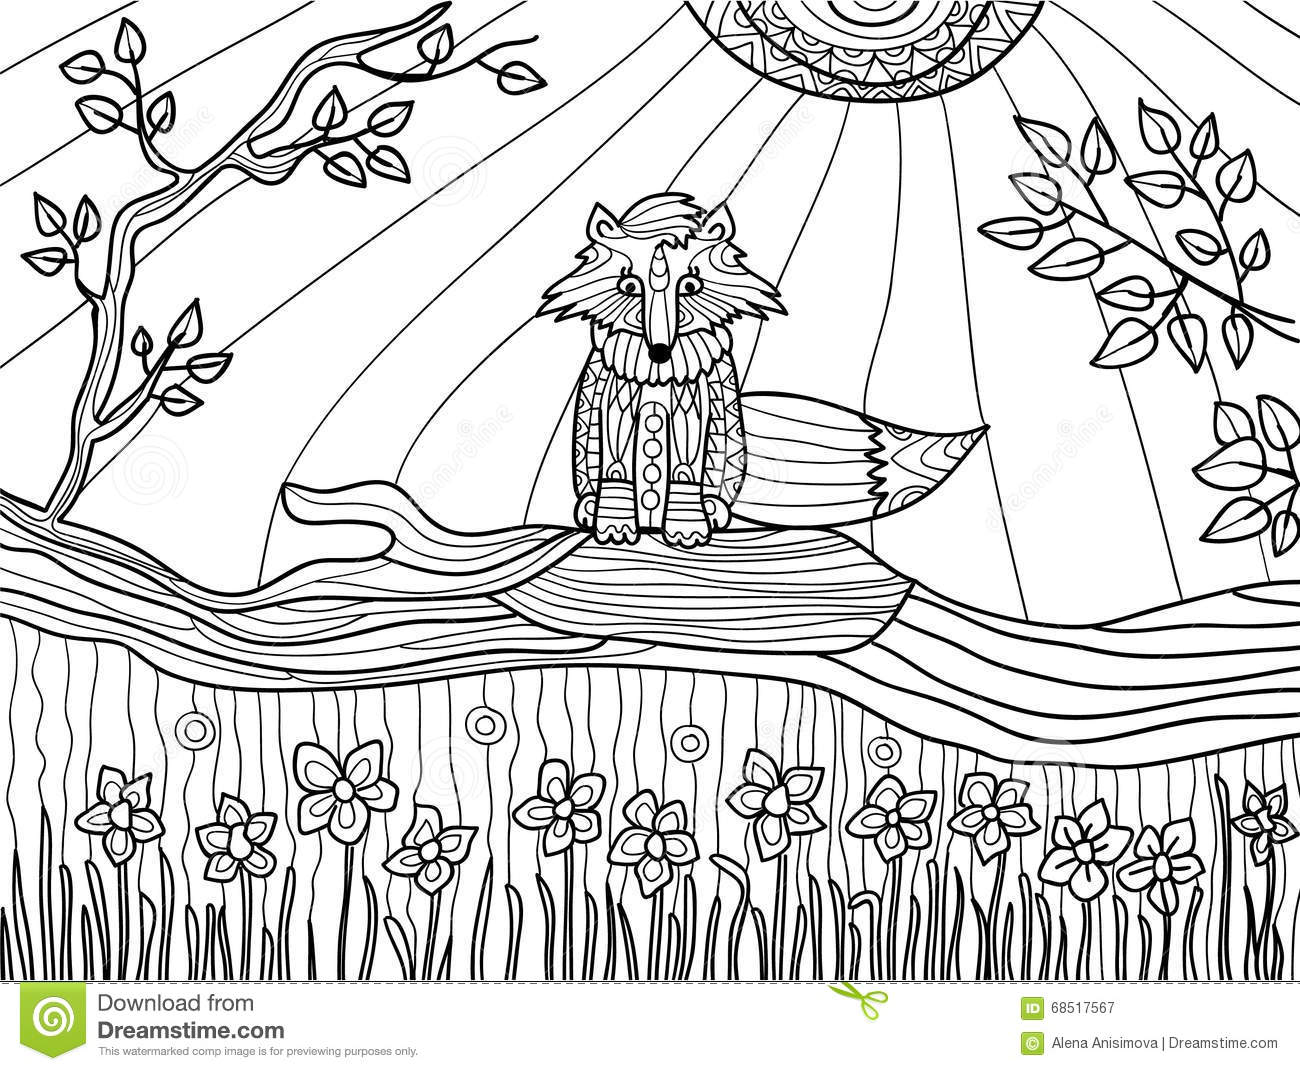 Coloring Book Pages For Adults: Funny Fox Cub On Fallen